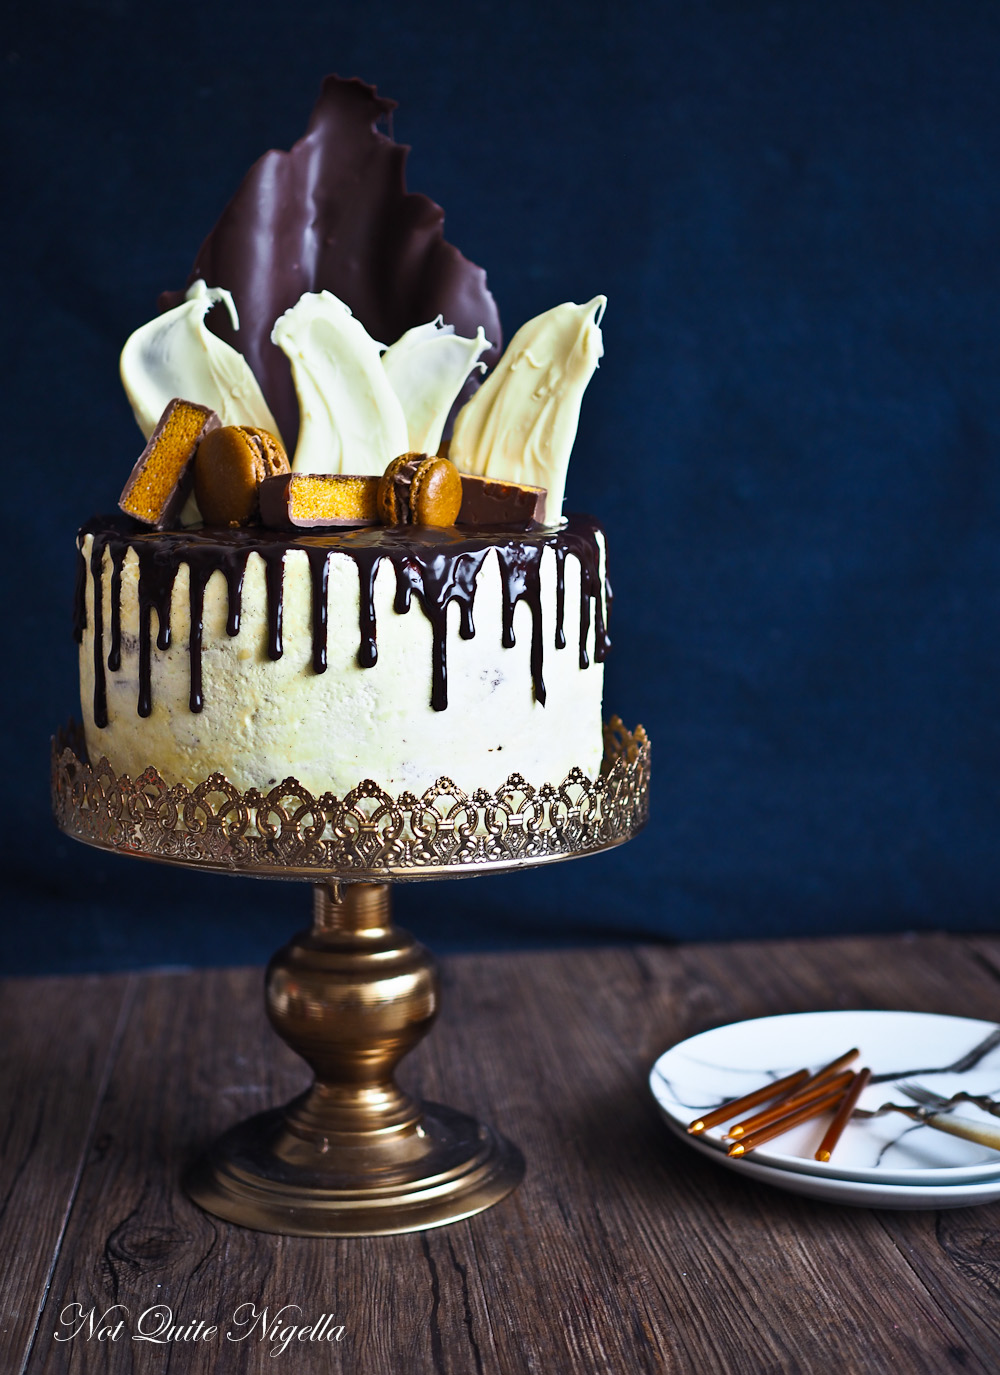 Chocolate Ganache Drip Cake Not Quite Nigella